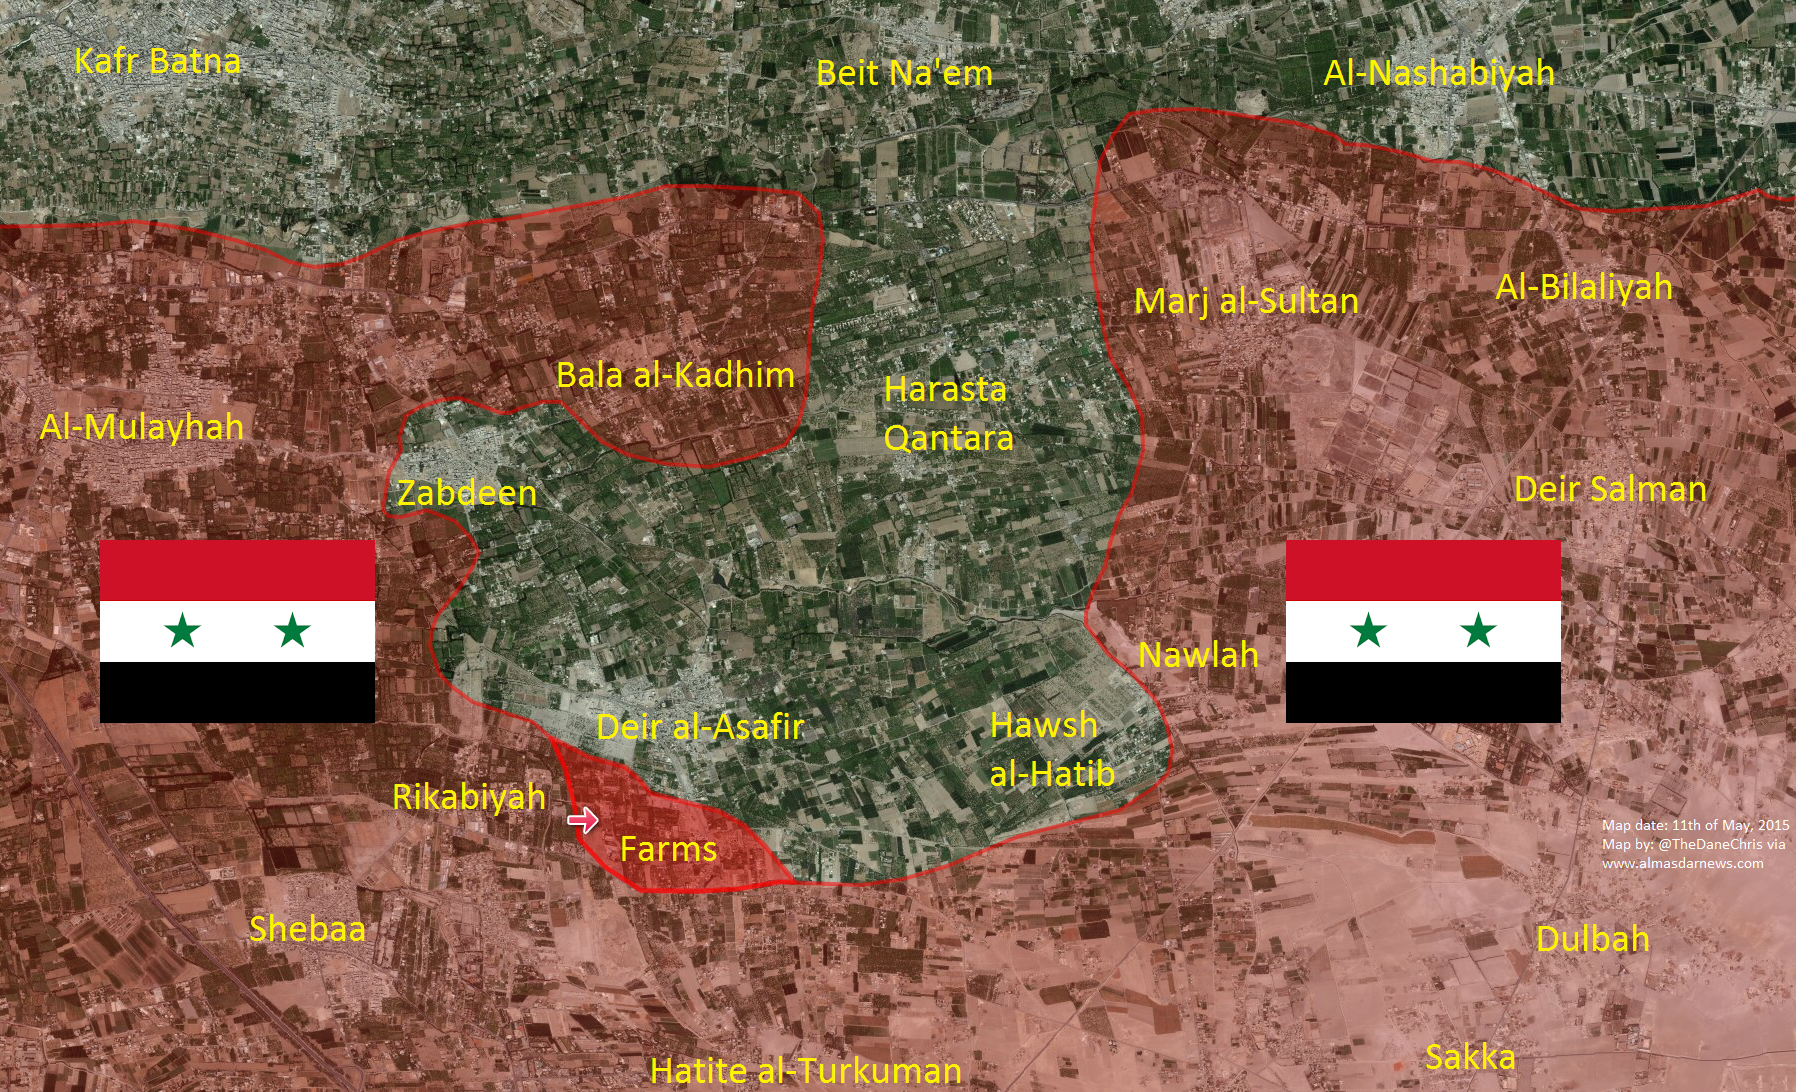 Syria's Army captures Rikabiyah Farms in new East Ghouta advance